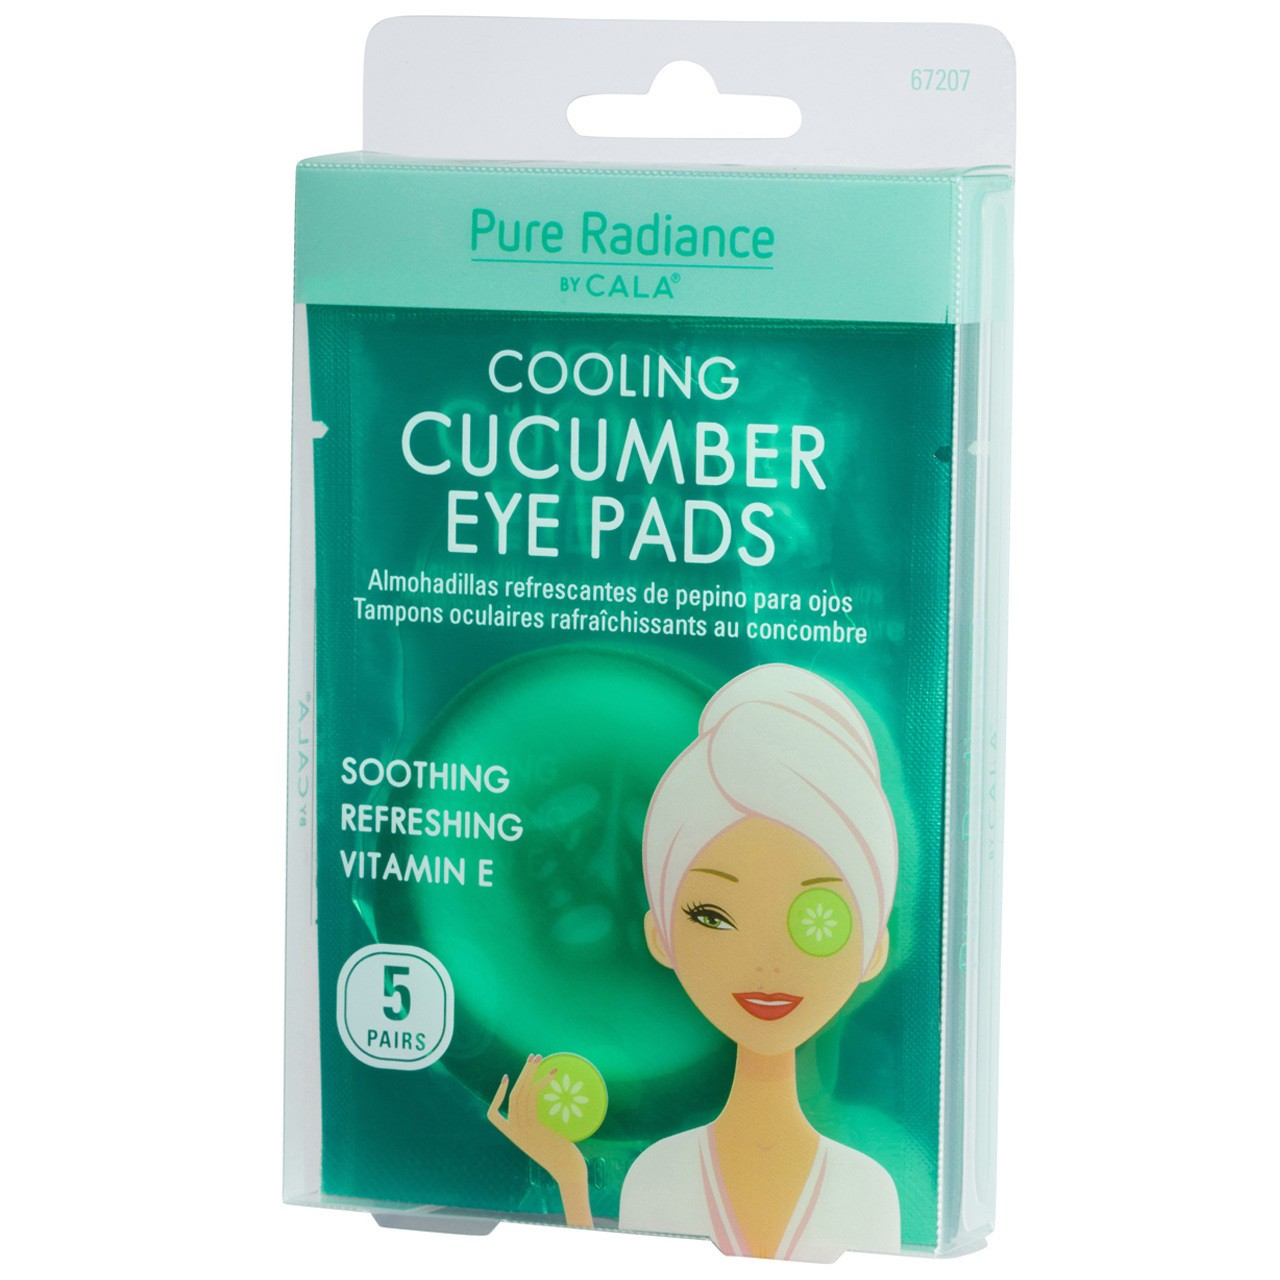 Augen-Pads: Cooling Cucumber Eye Pads (5 Paare)